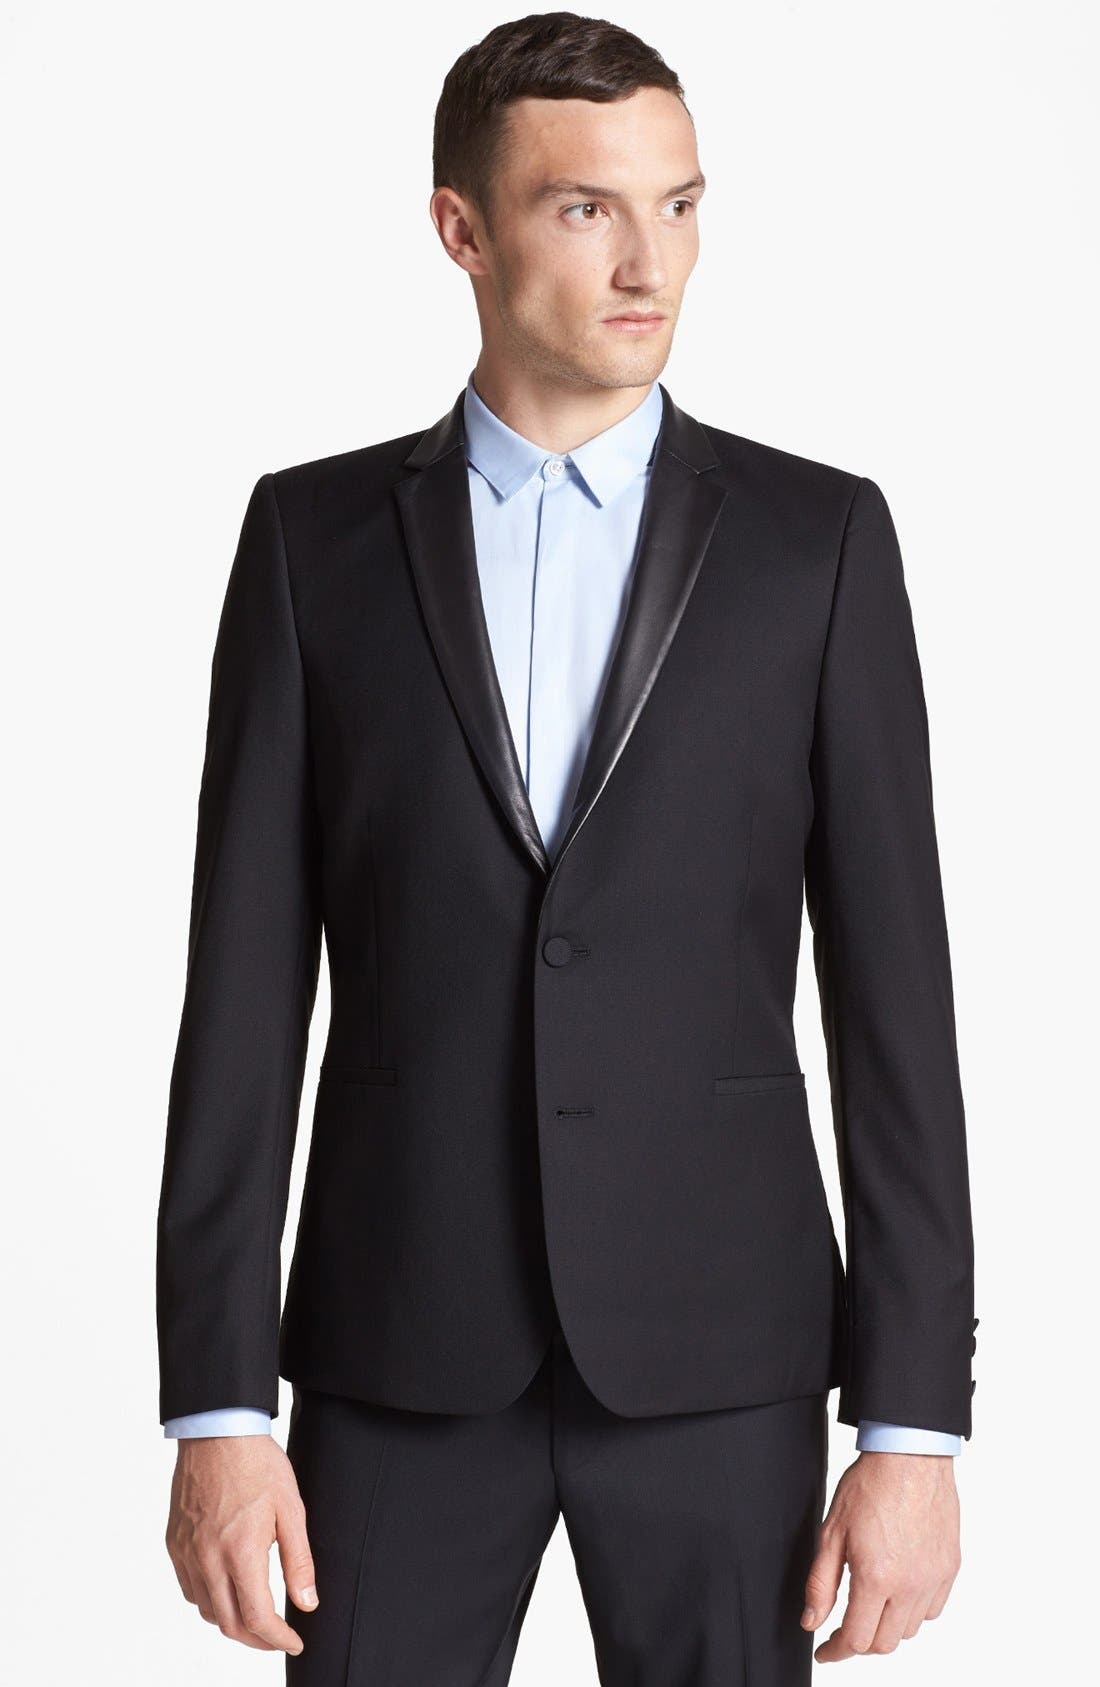 Main Image - The Kooples Trim Fit Black Wool Blazer with Leather Peak Lapels